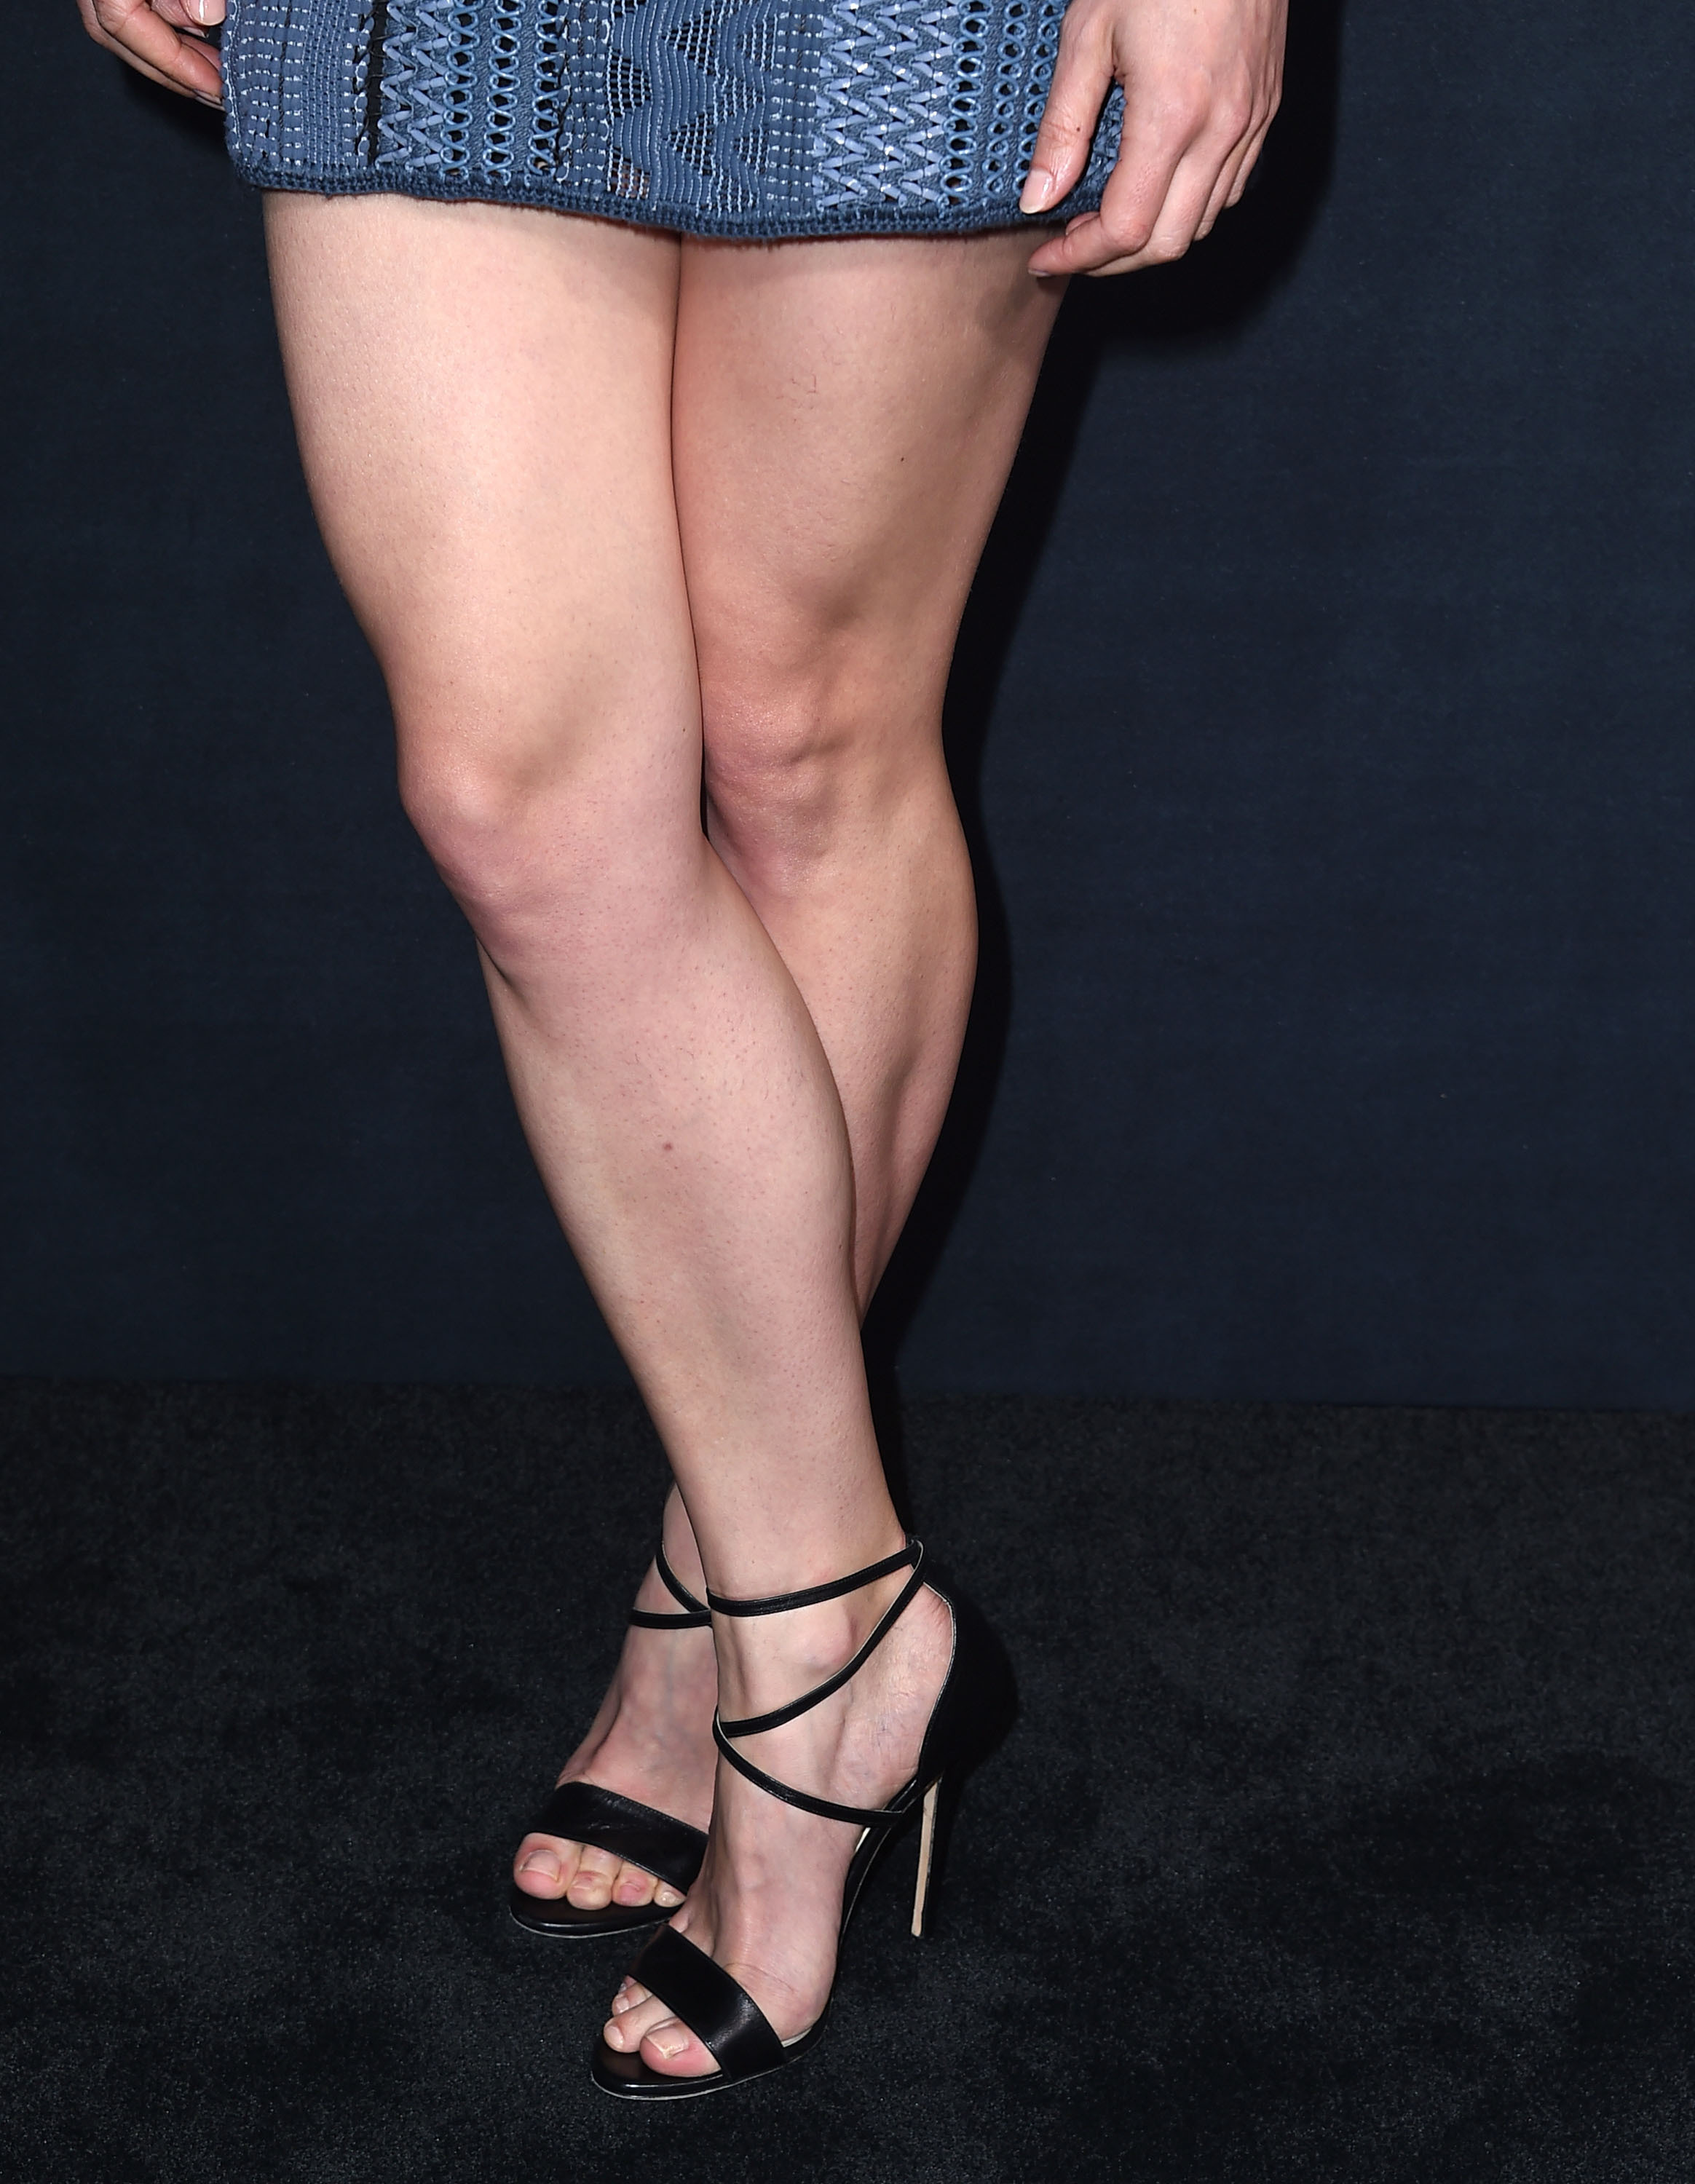 from Lewis rosamund pike nude feet